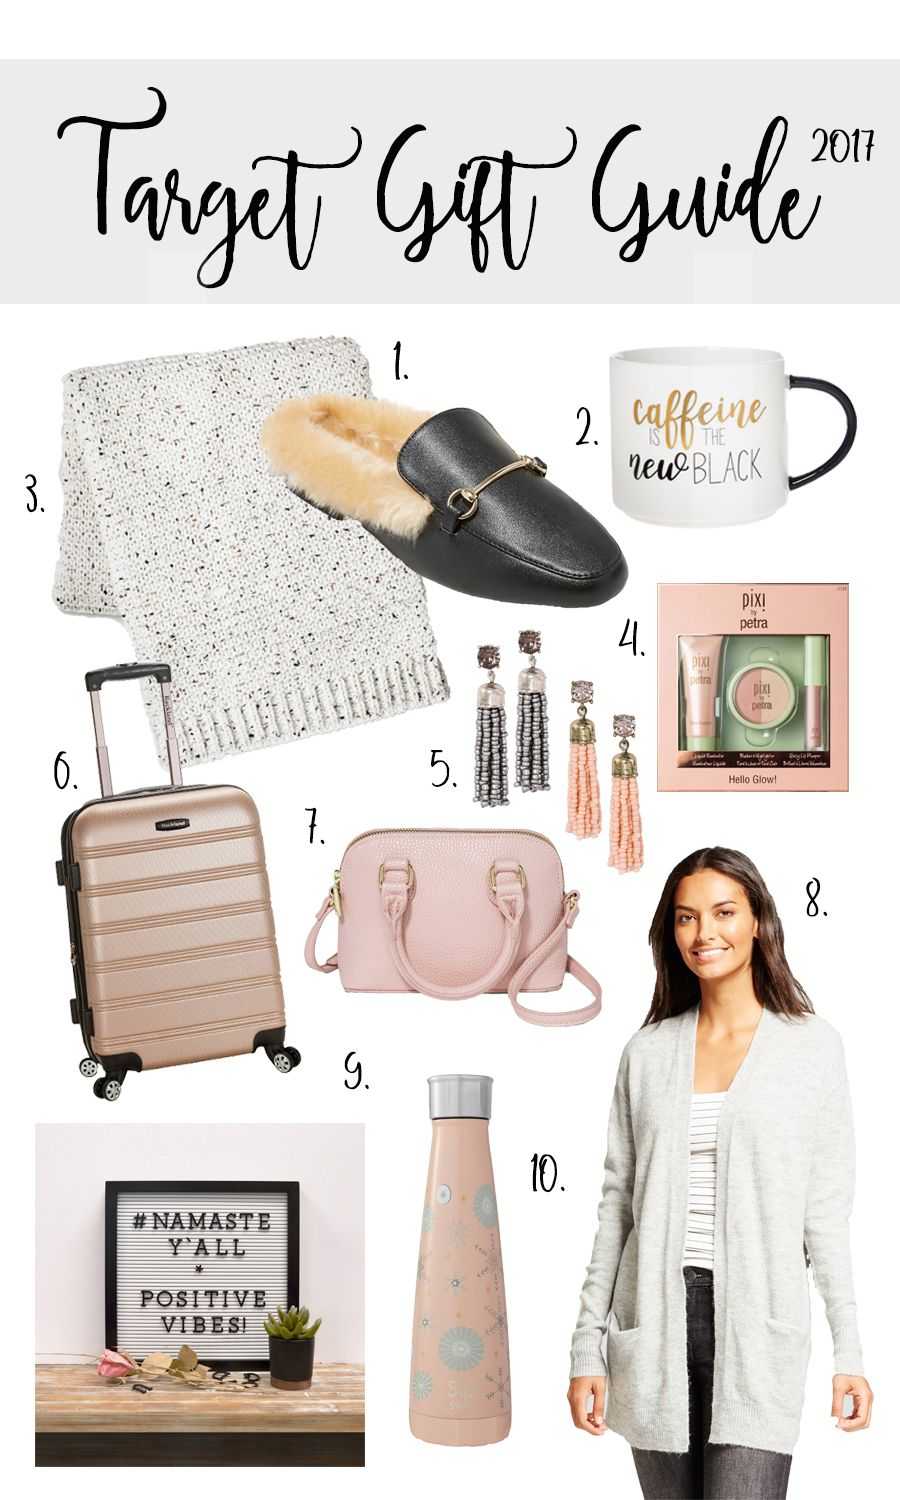 290 & Target Gift Guide 2017 | Something Shannon | XO Influencers | Target ...